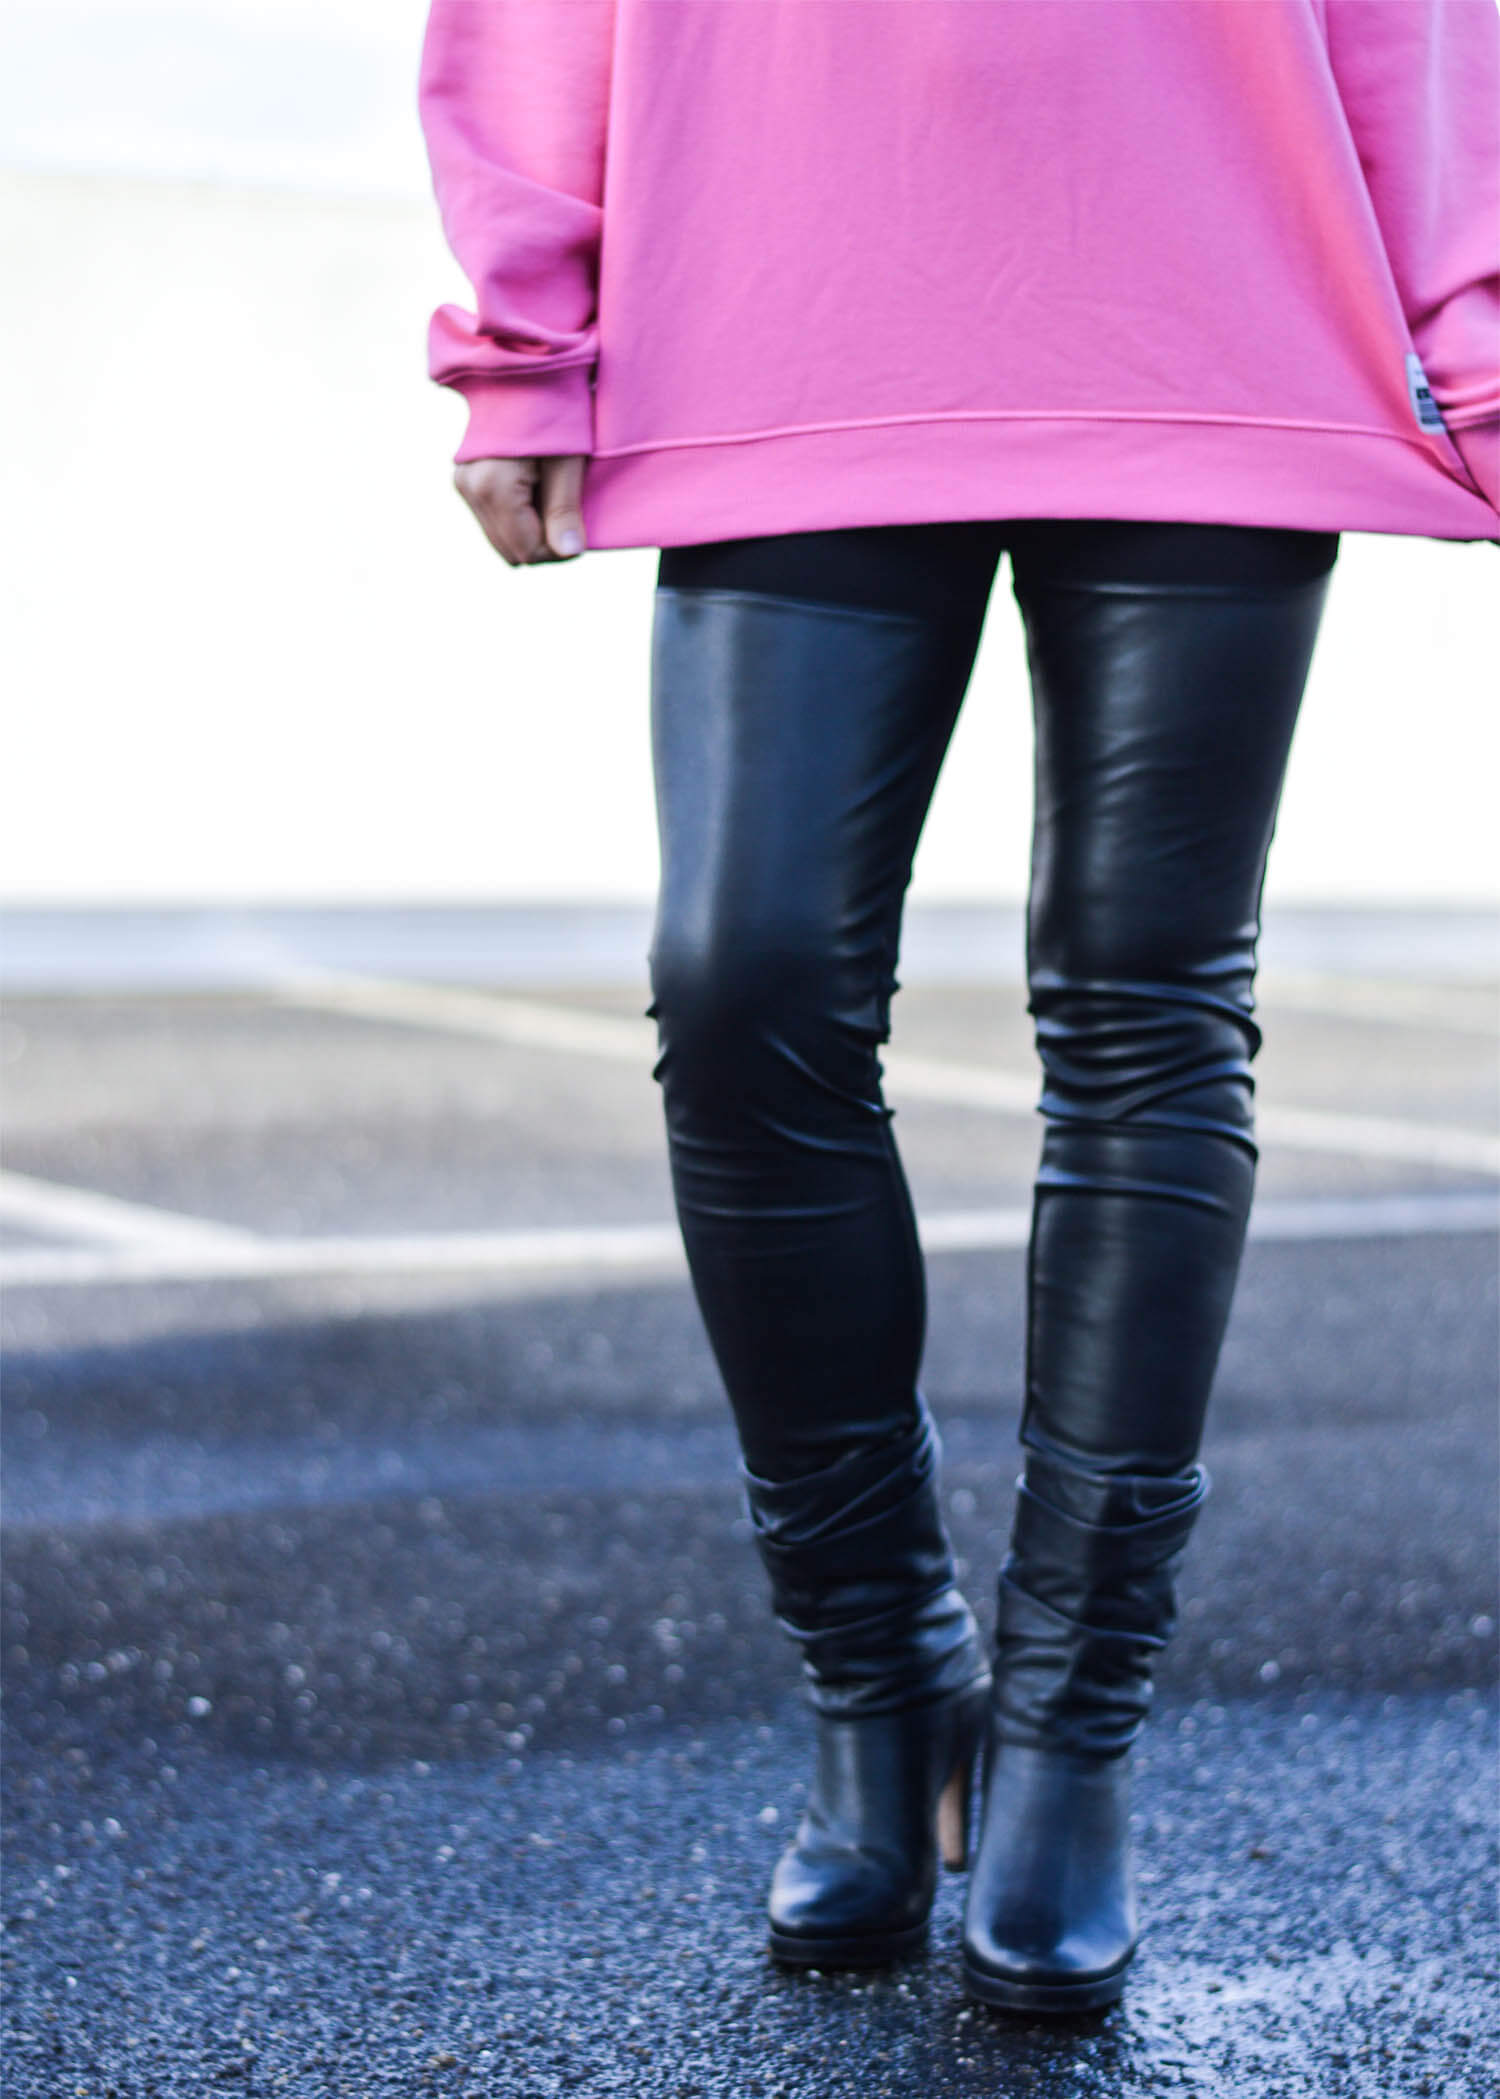 Kationette-Fashionblog-NRW-Outfit-Pink-Fila-Sweater-Leather-Leggings-HighHeel-Booties-streetstyle-curls